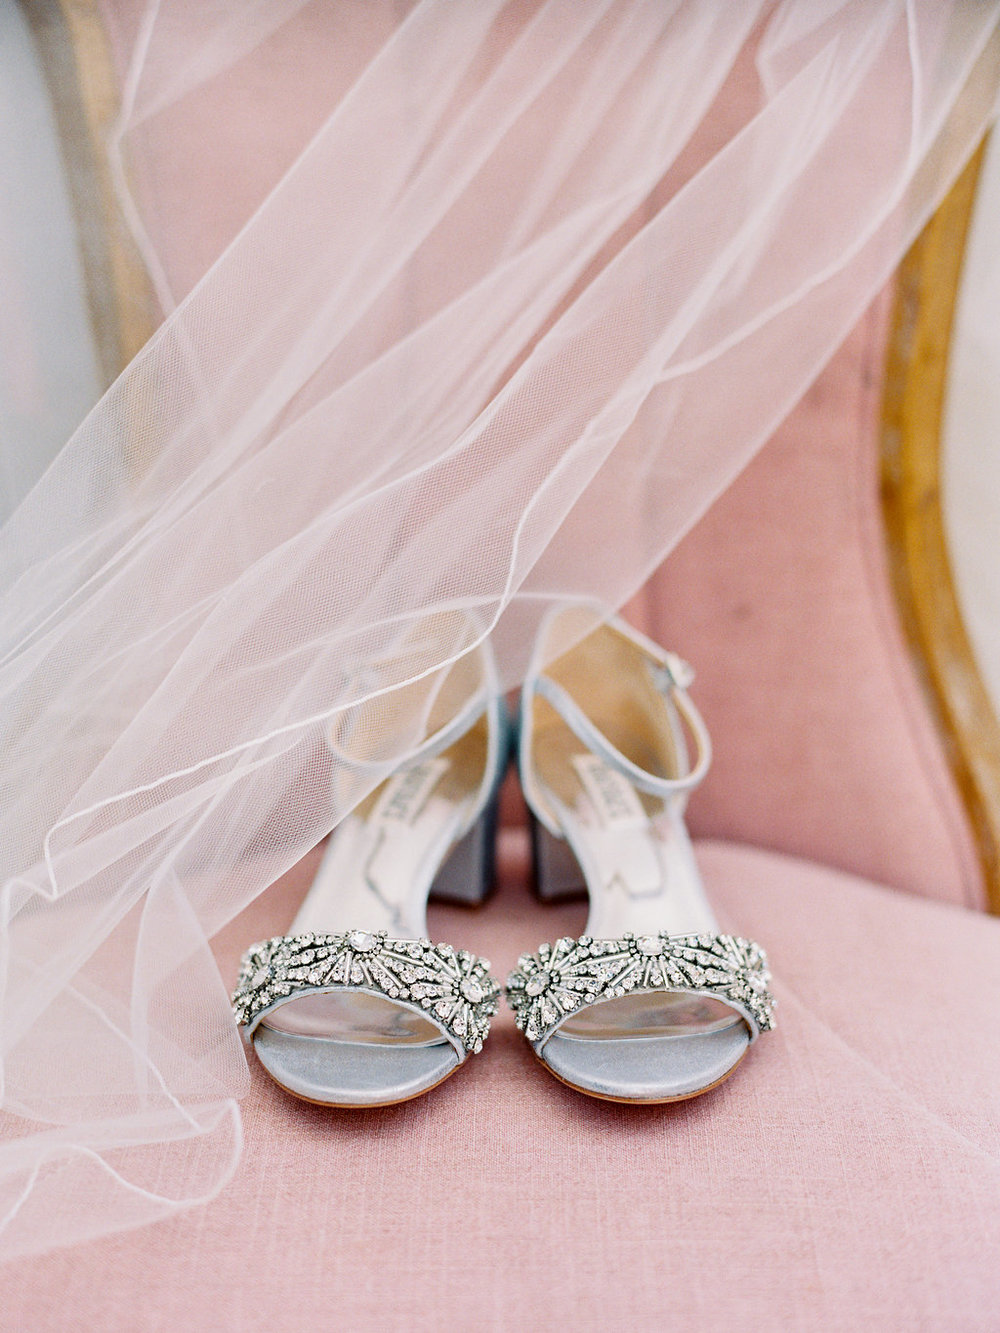 wedding shoes.jpg